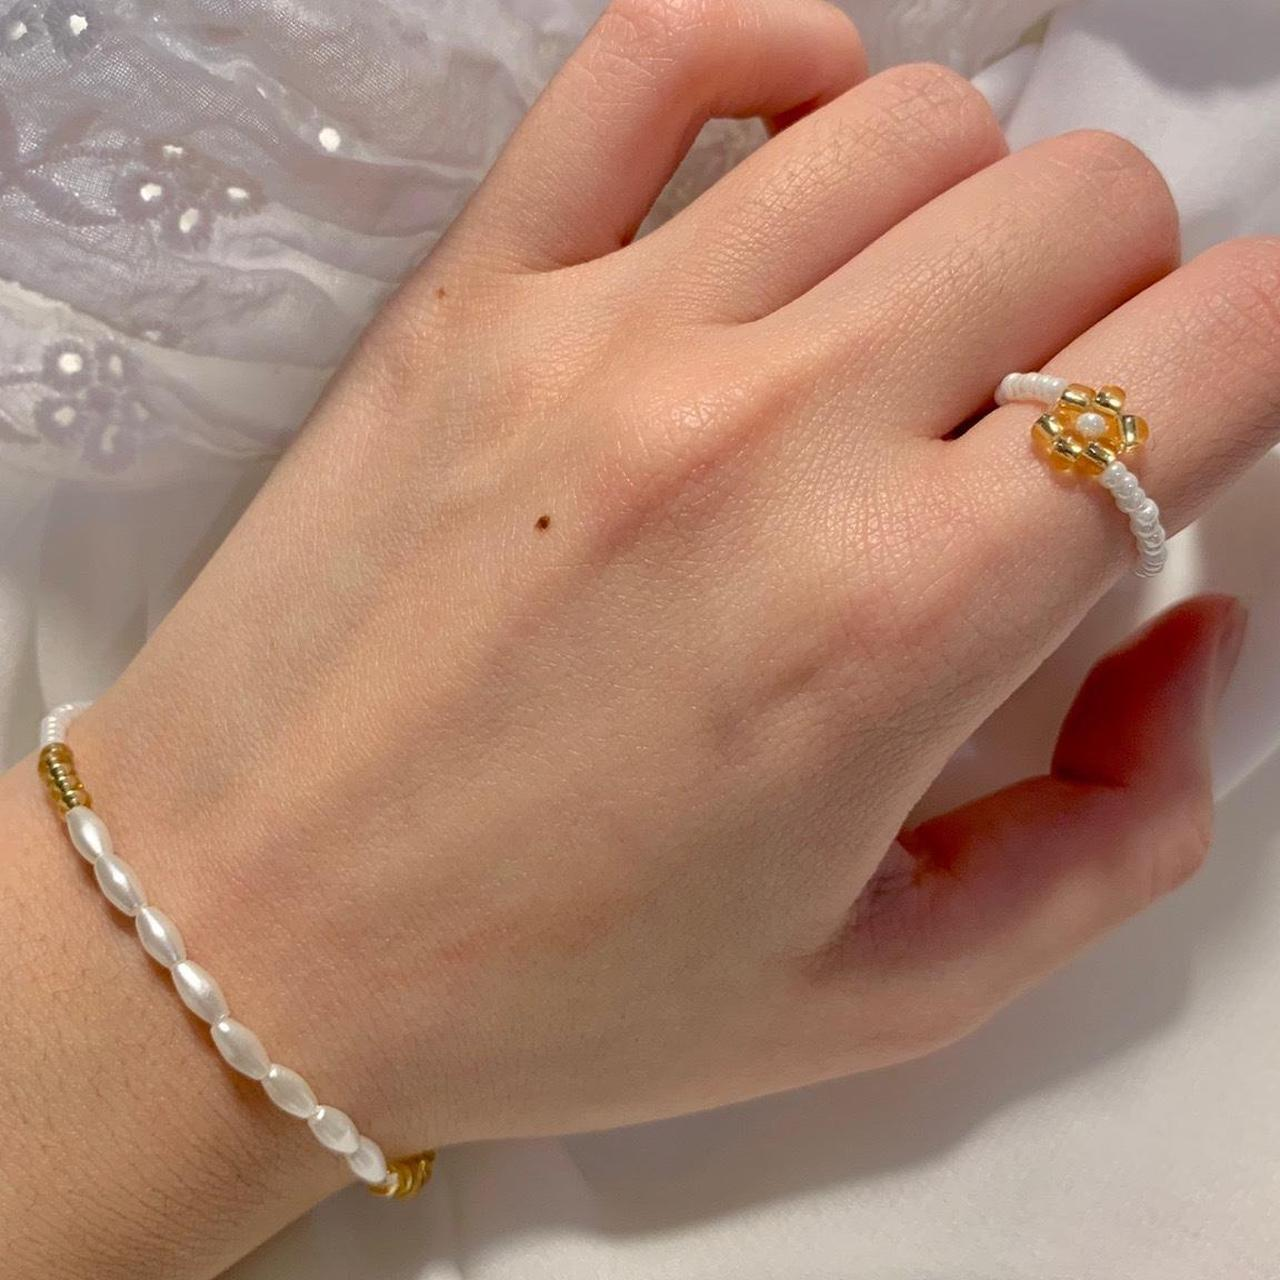 Product Image 1 - Dainty Gold Pearl Bracelet and